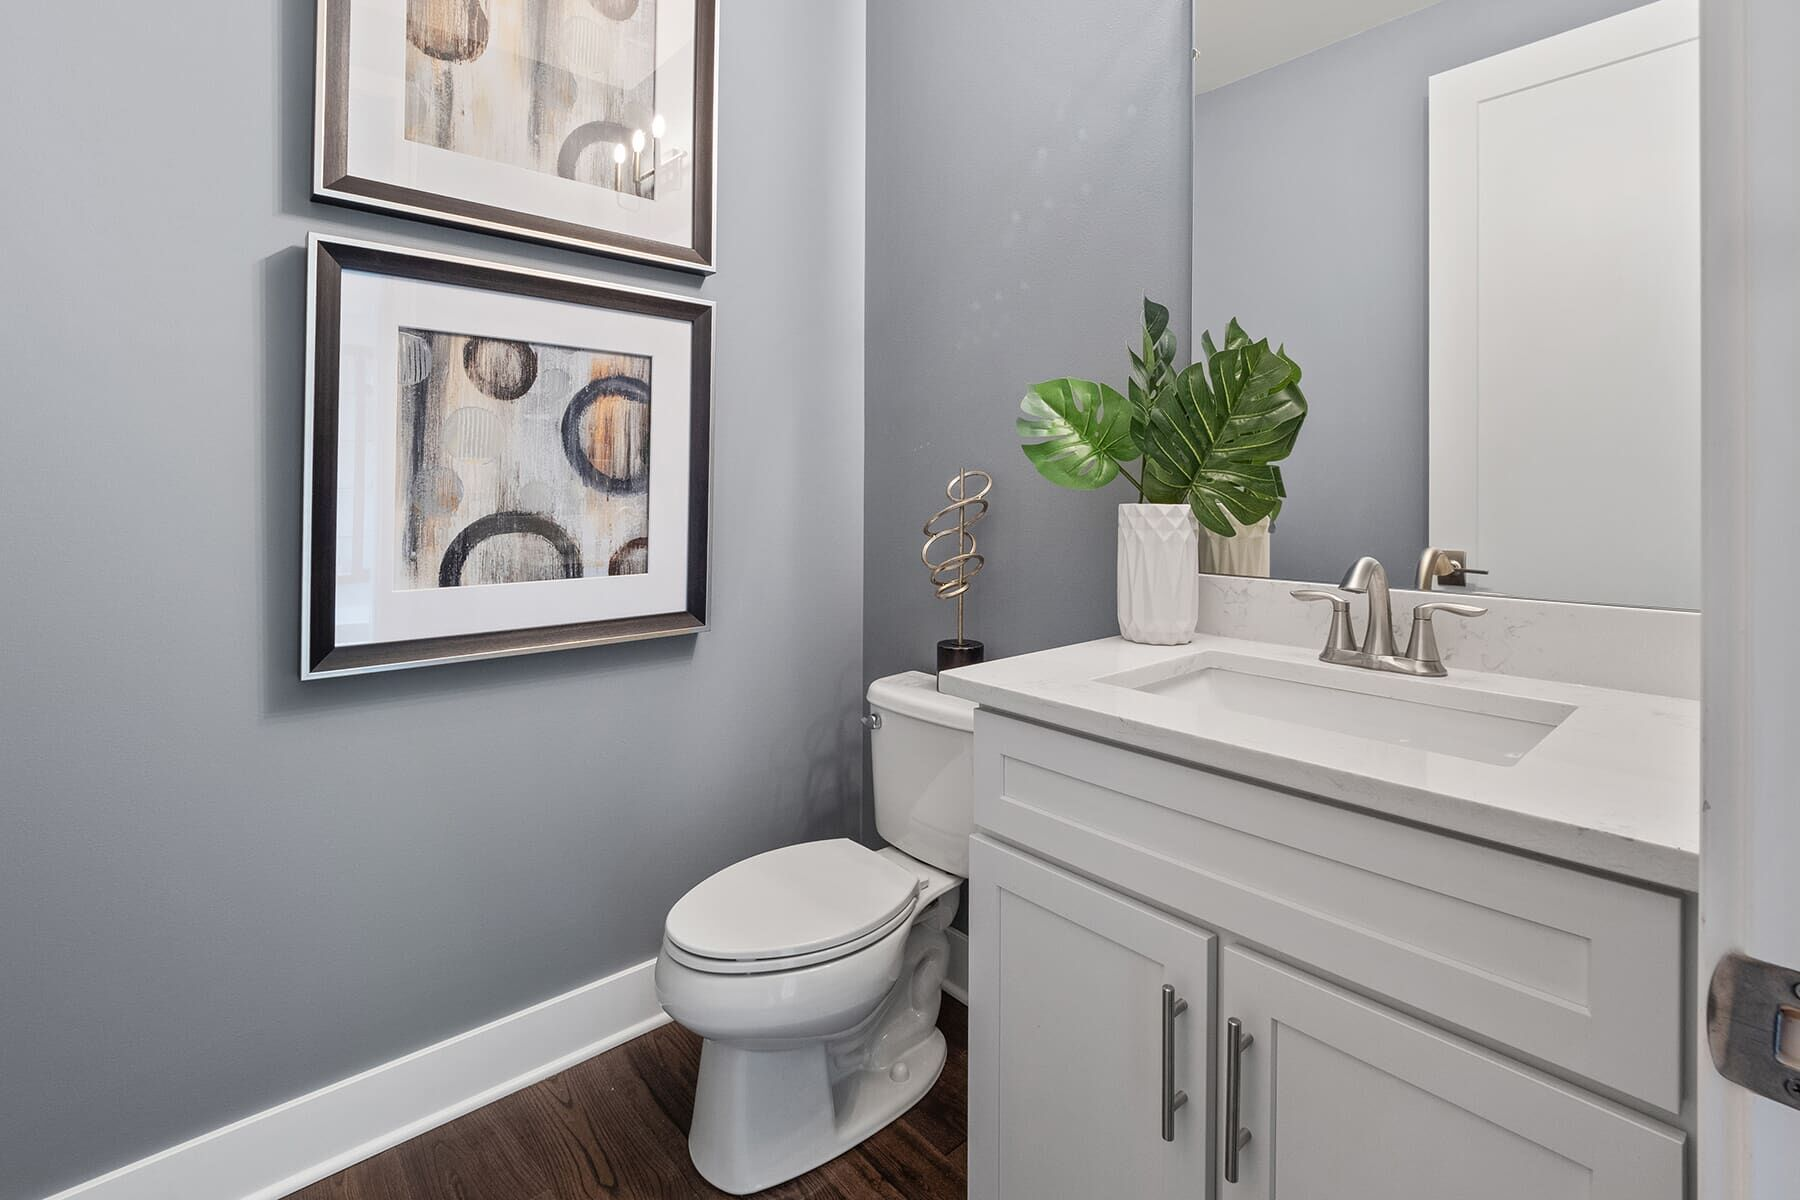 Bathroom featured in the Ashford By M/I Homes in Detroit, MI